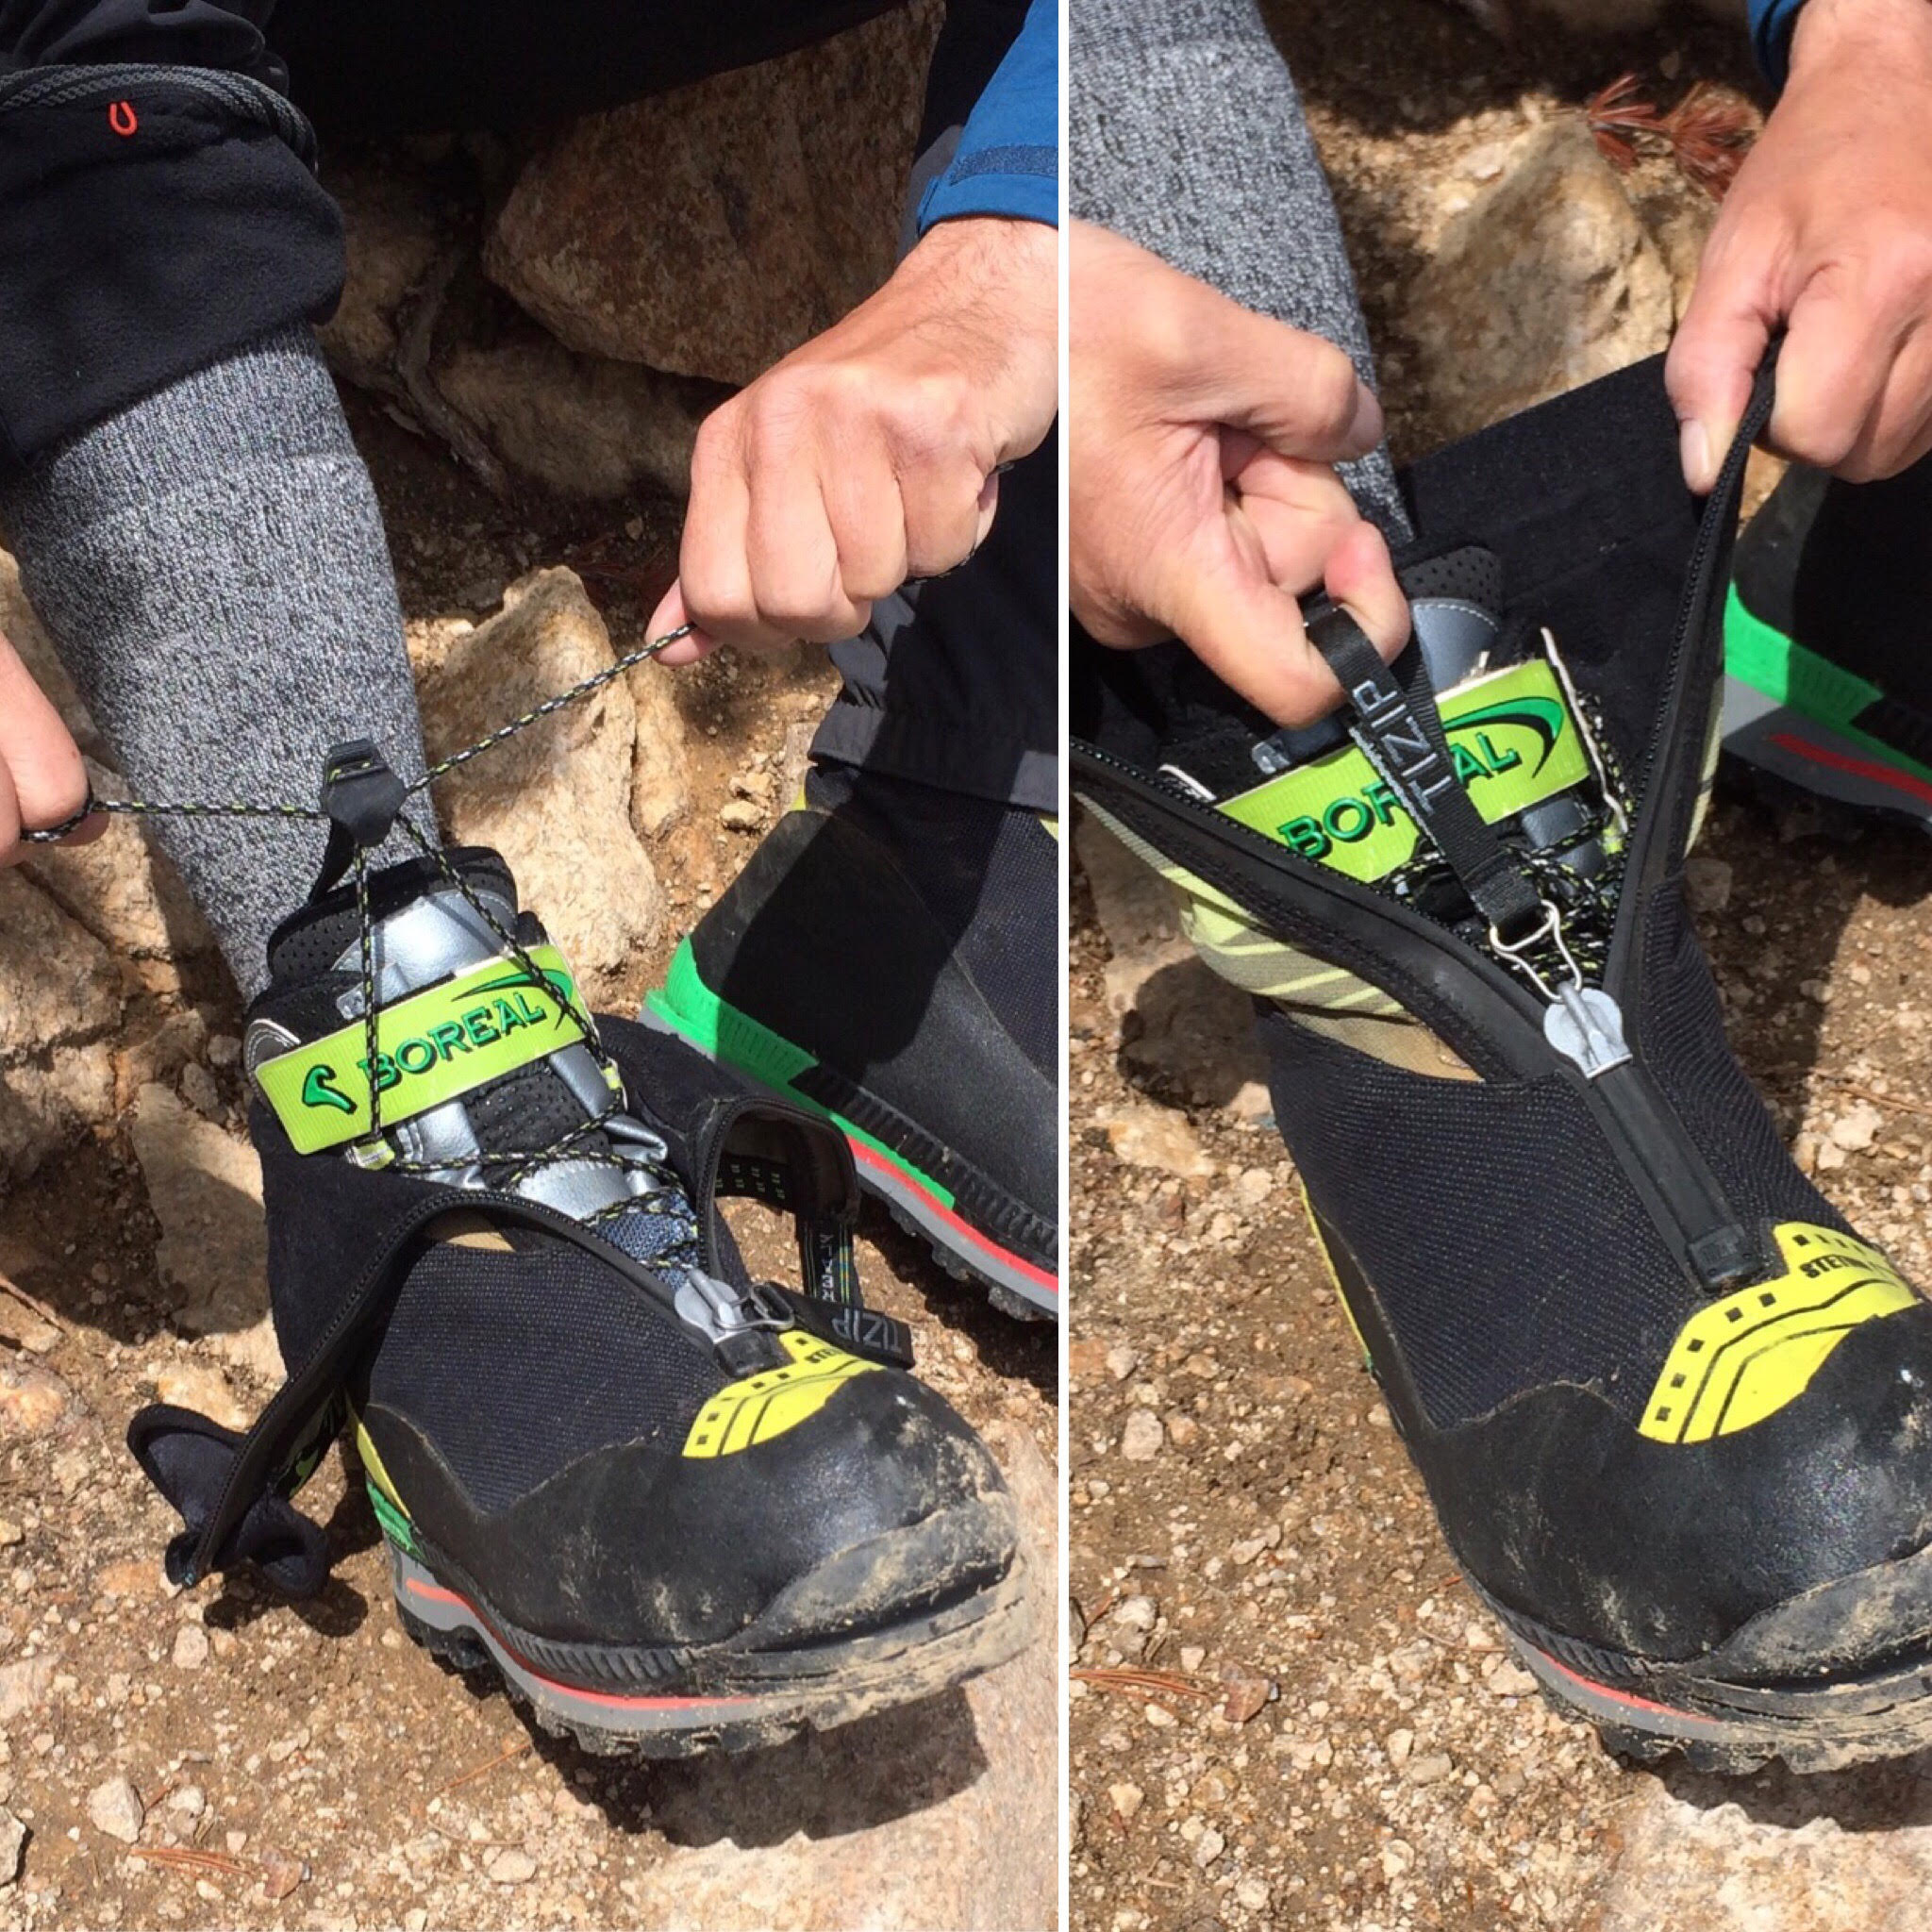 The Boreal Stetind has a simplified lacing system that is easy to use with gloves in cold conditions (left). The integrated gaiter closes with the TIZIP zipper (right). [Photos] Nick Direen